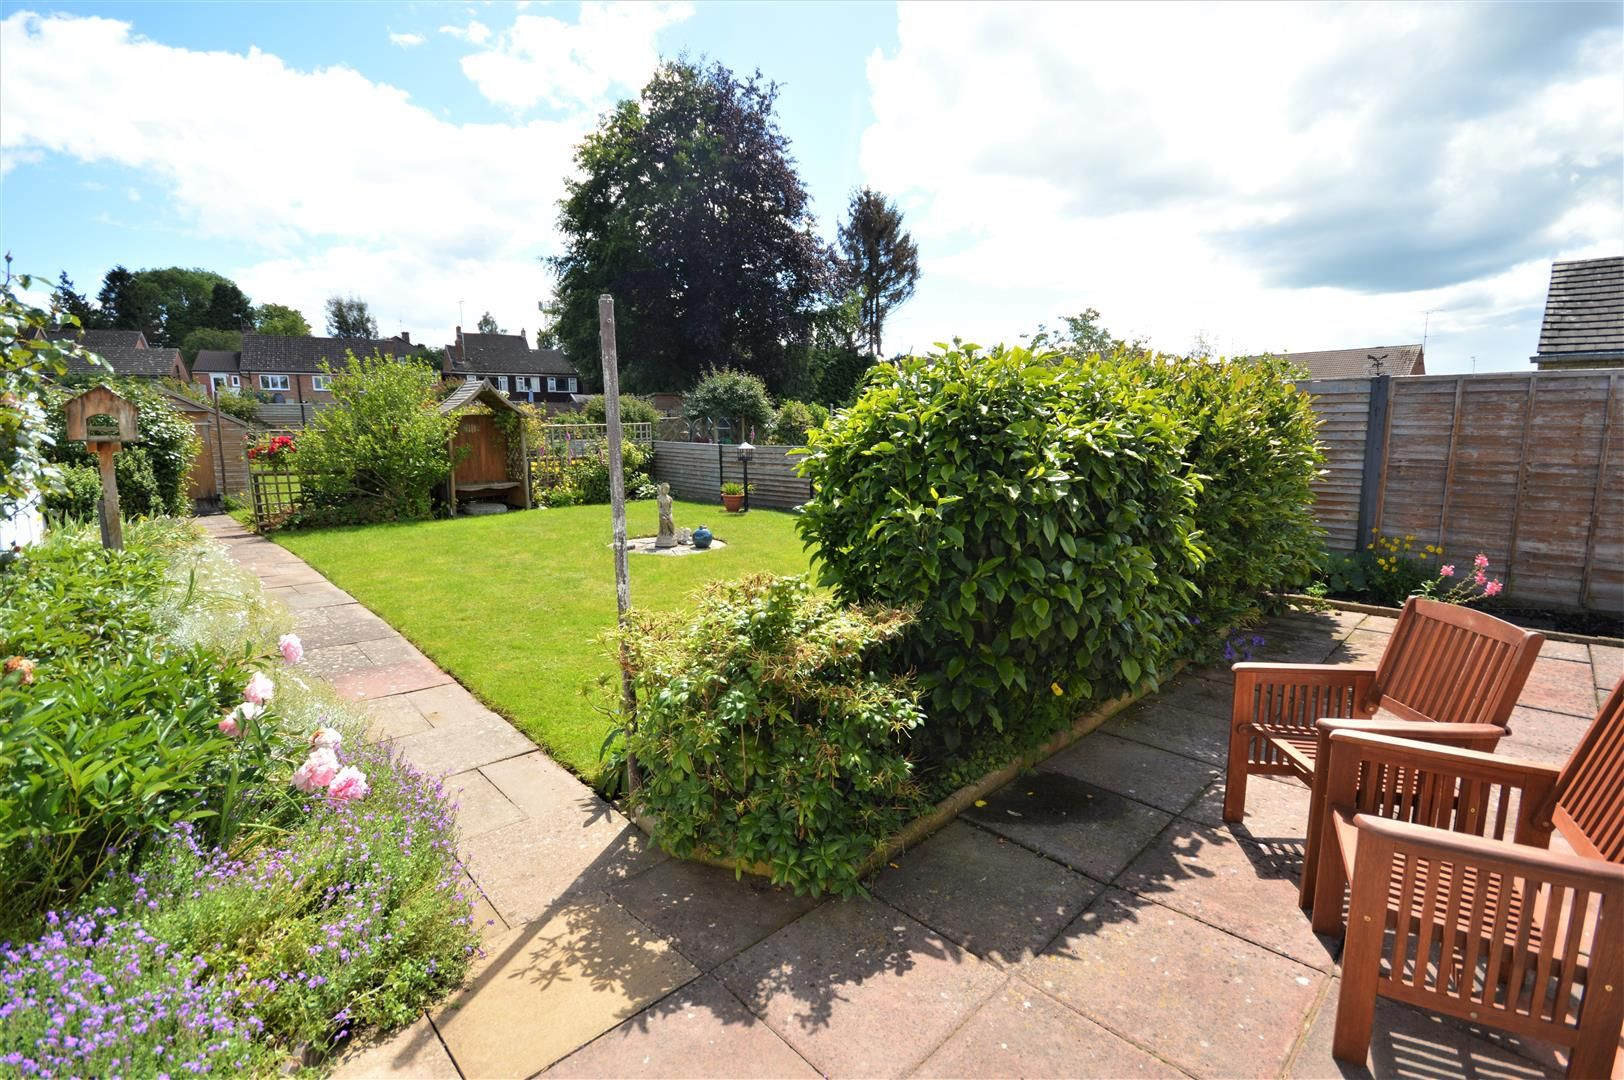 2 bed semi-detached-bungalow for sale in Leominster  - Property Image 8